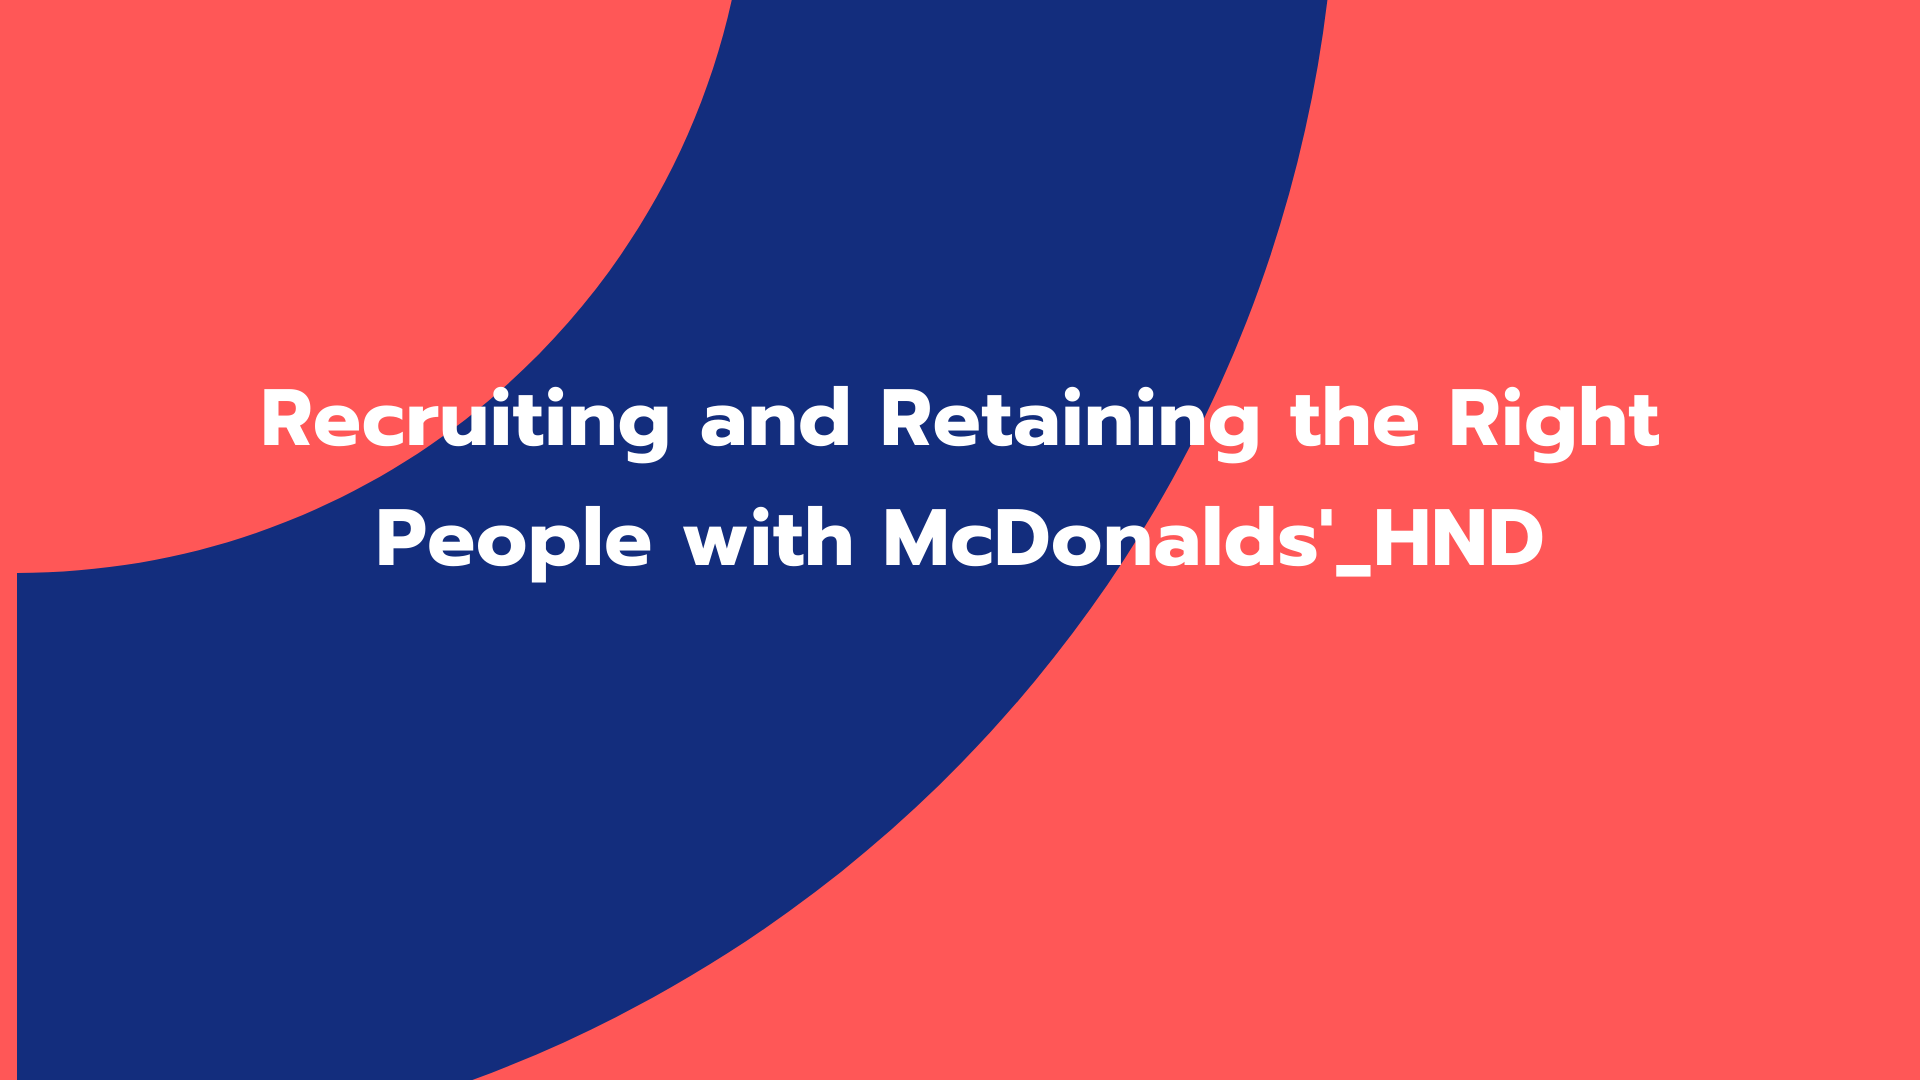 Recruiting and Retaining the Right People with McDonalds'_HND